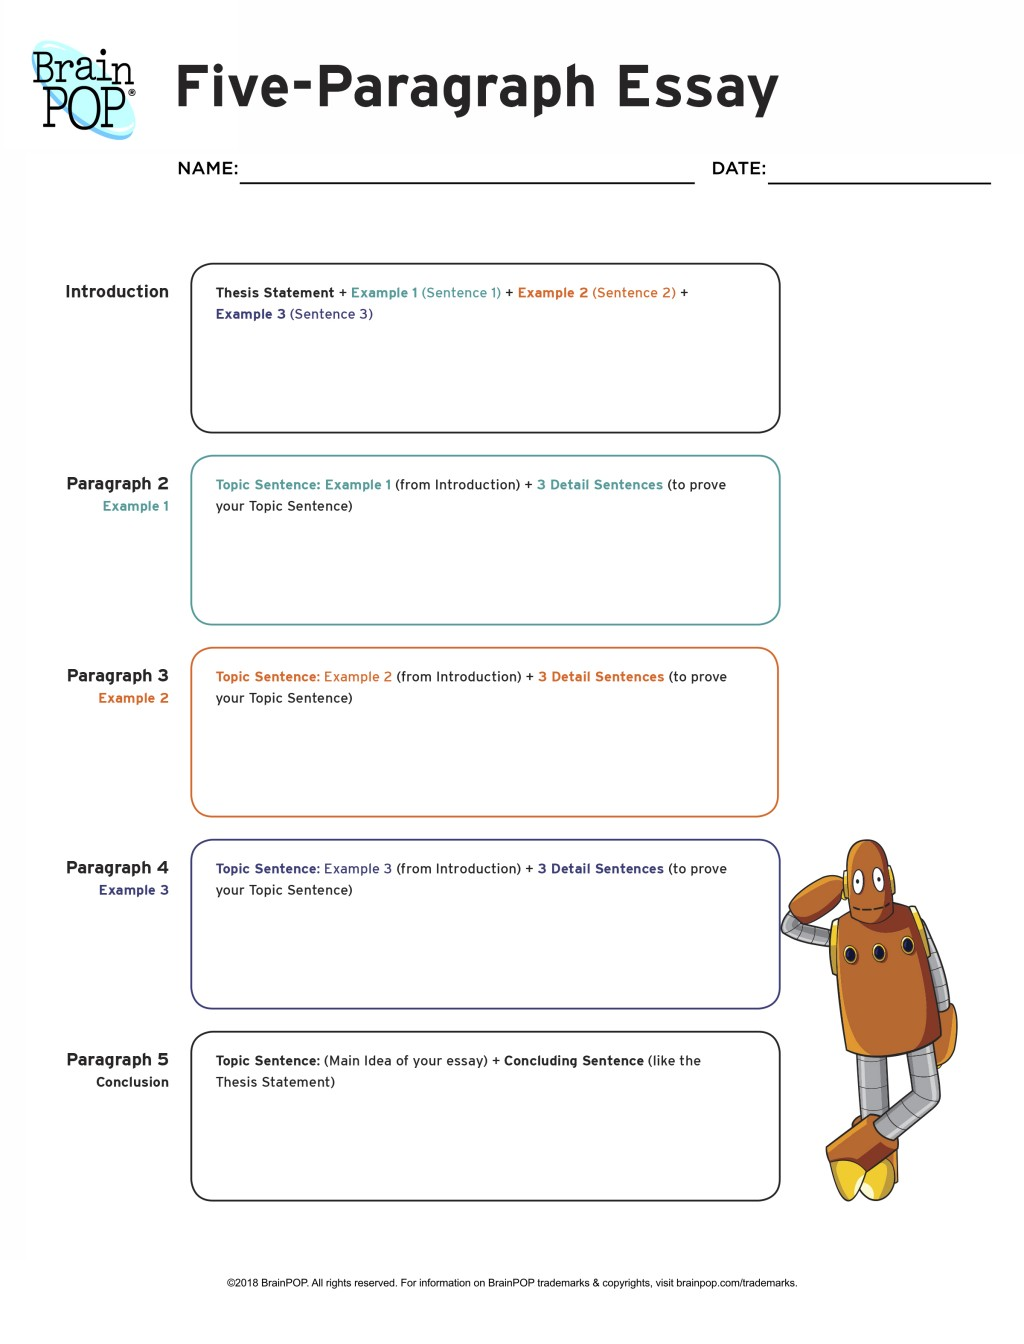 002 Five Paragraph Essay Graphic Organizer Writing Stunning A 5 Sample Pdf Outline Of Template Large